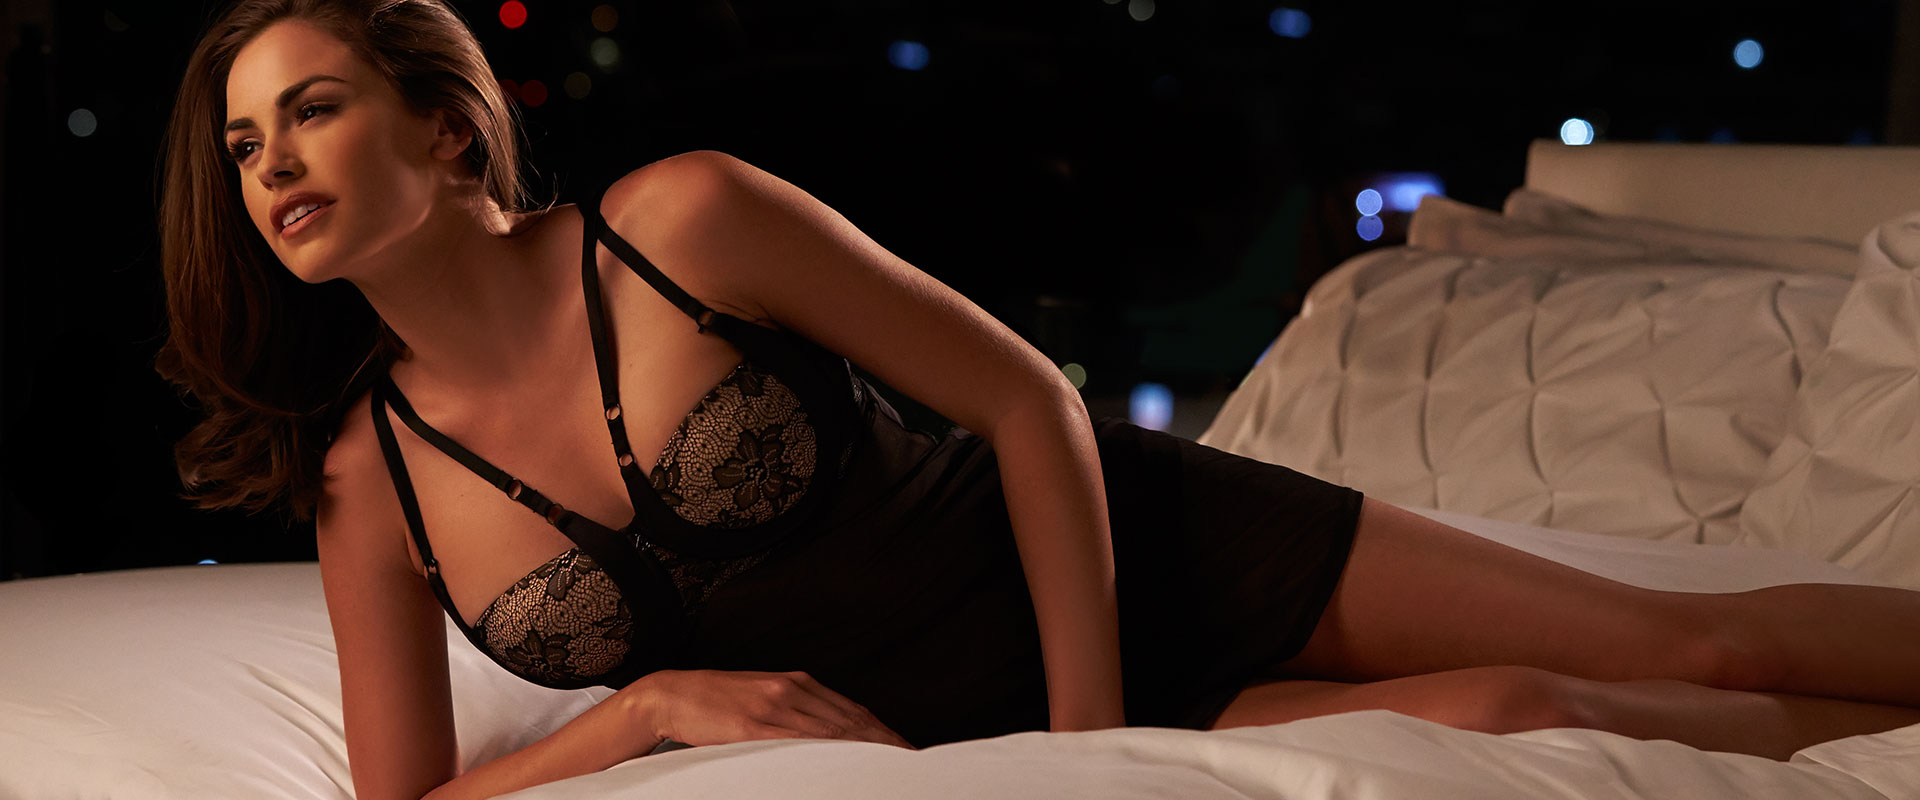 NightLift® sleep support lingerie